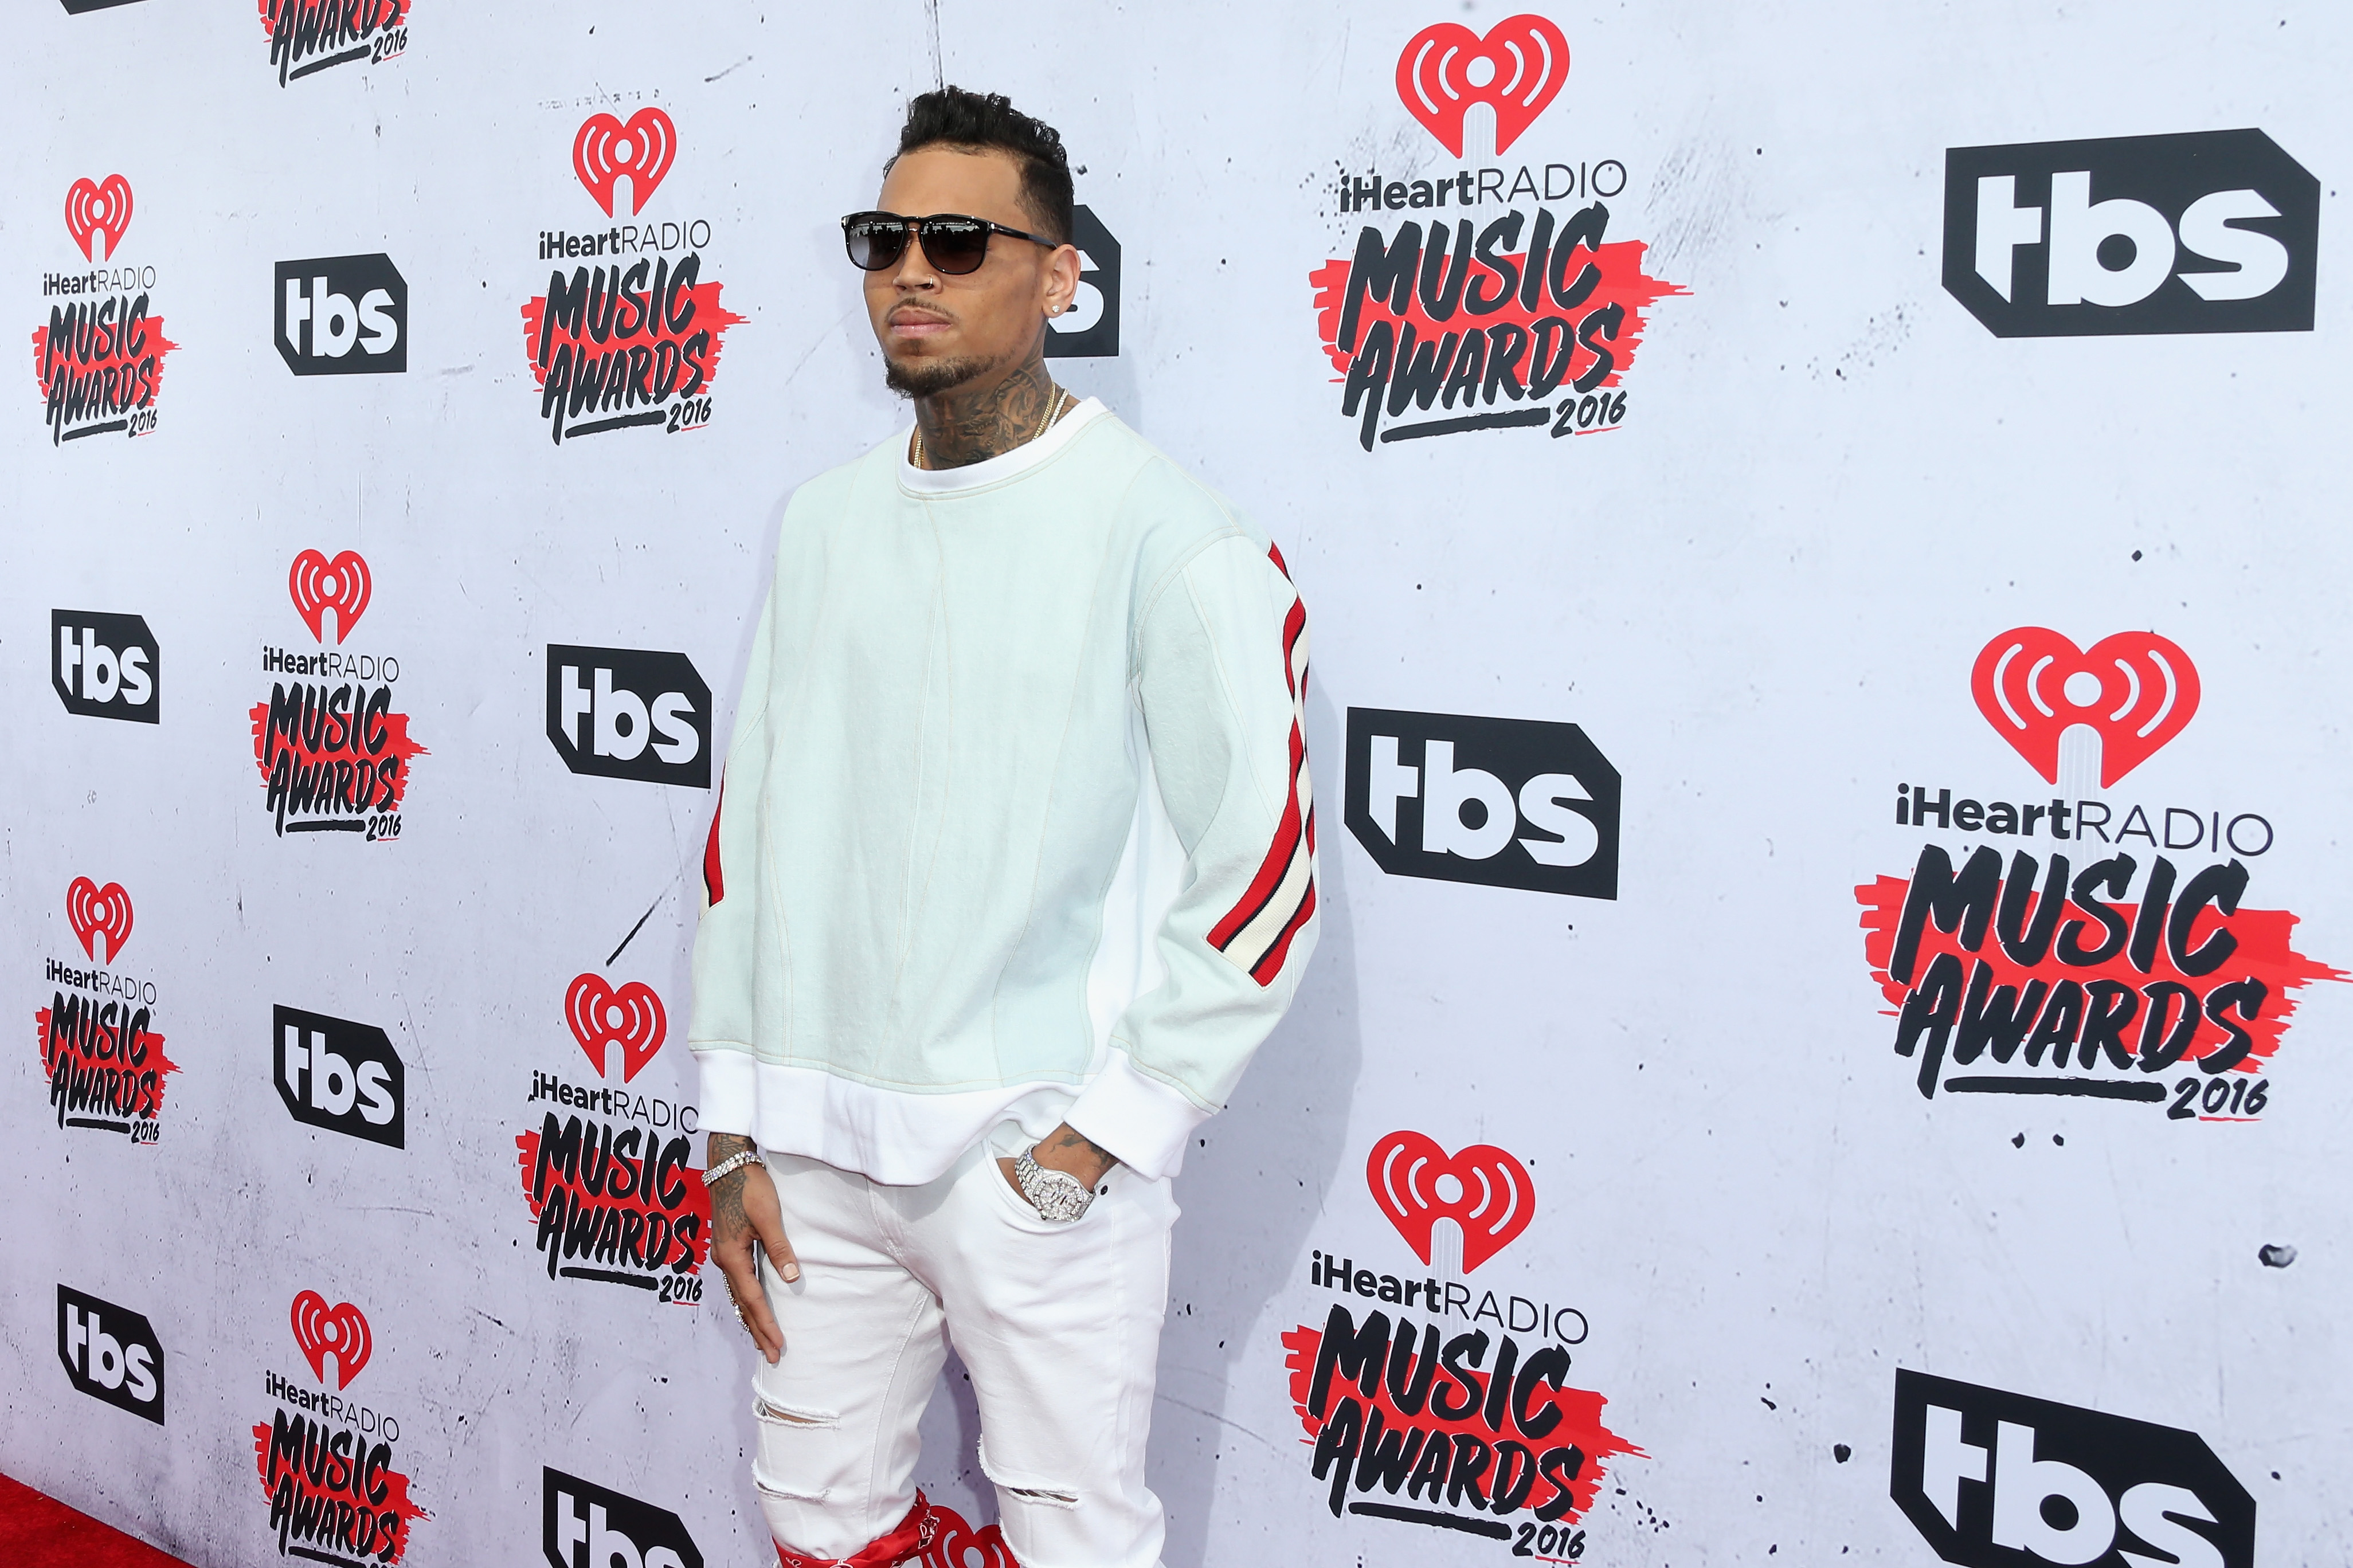 Chris Brown Facing Charges Over Dangerous Pet For 3 Year Old Daughter GettyImages 518986422